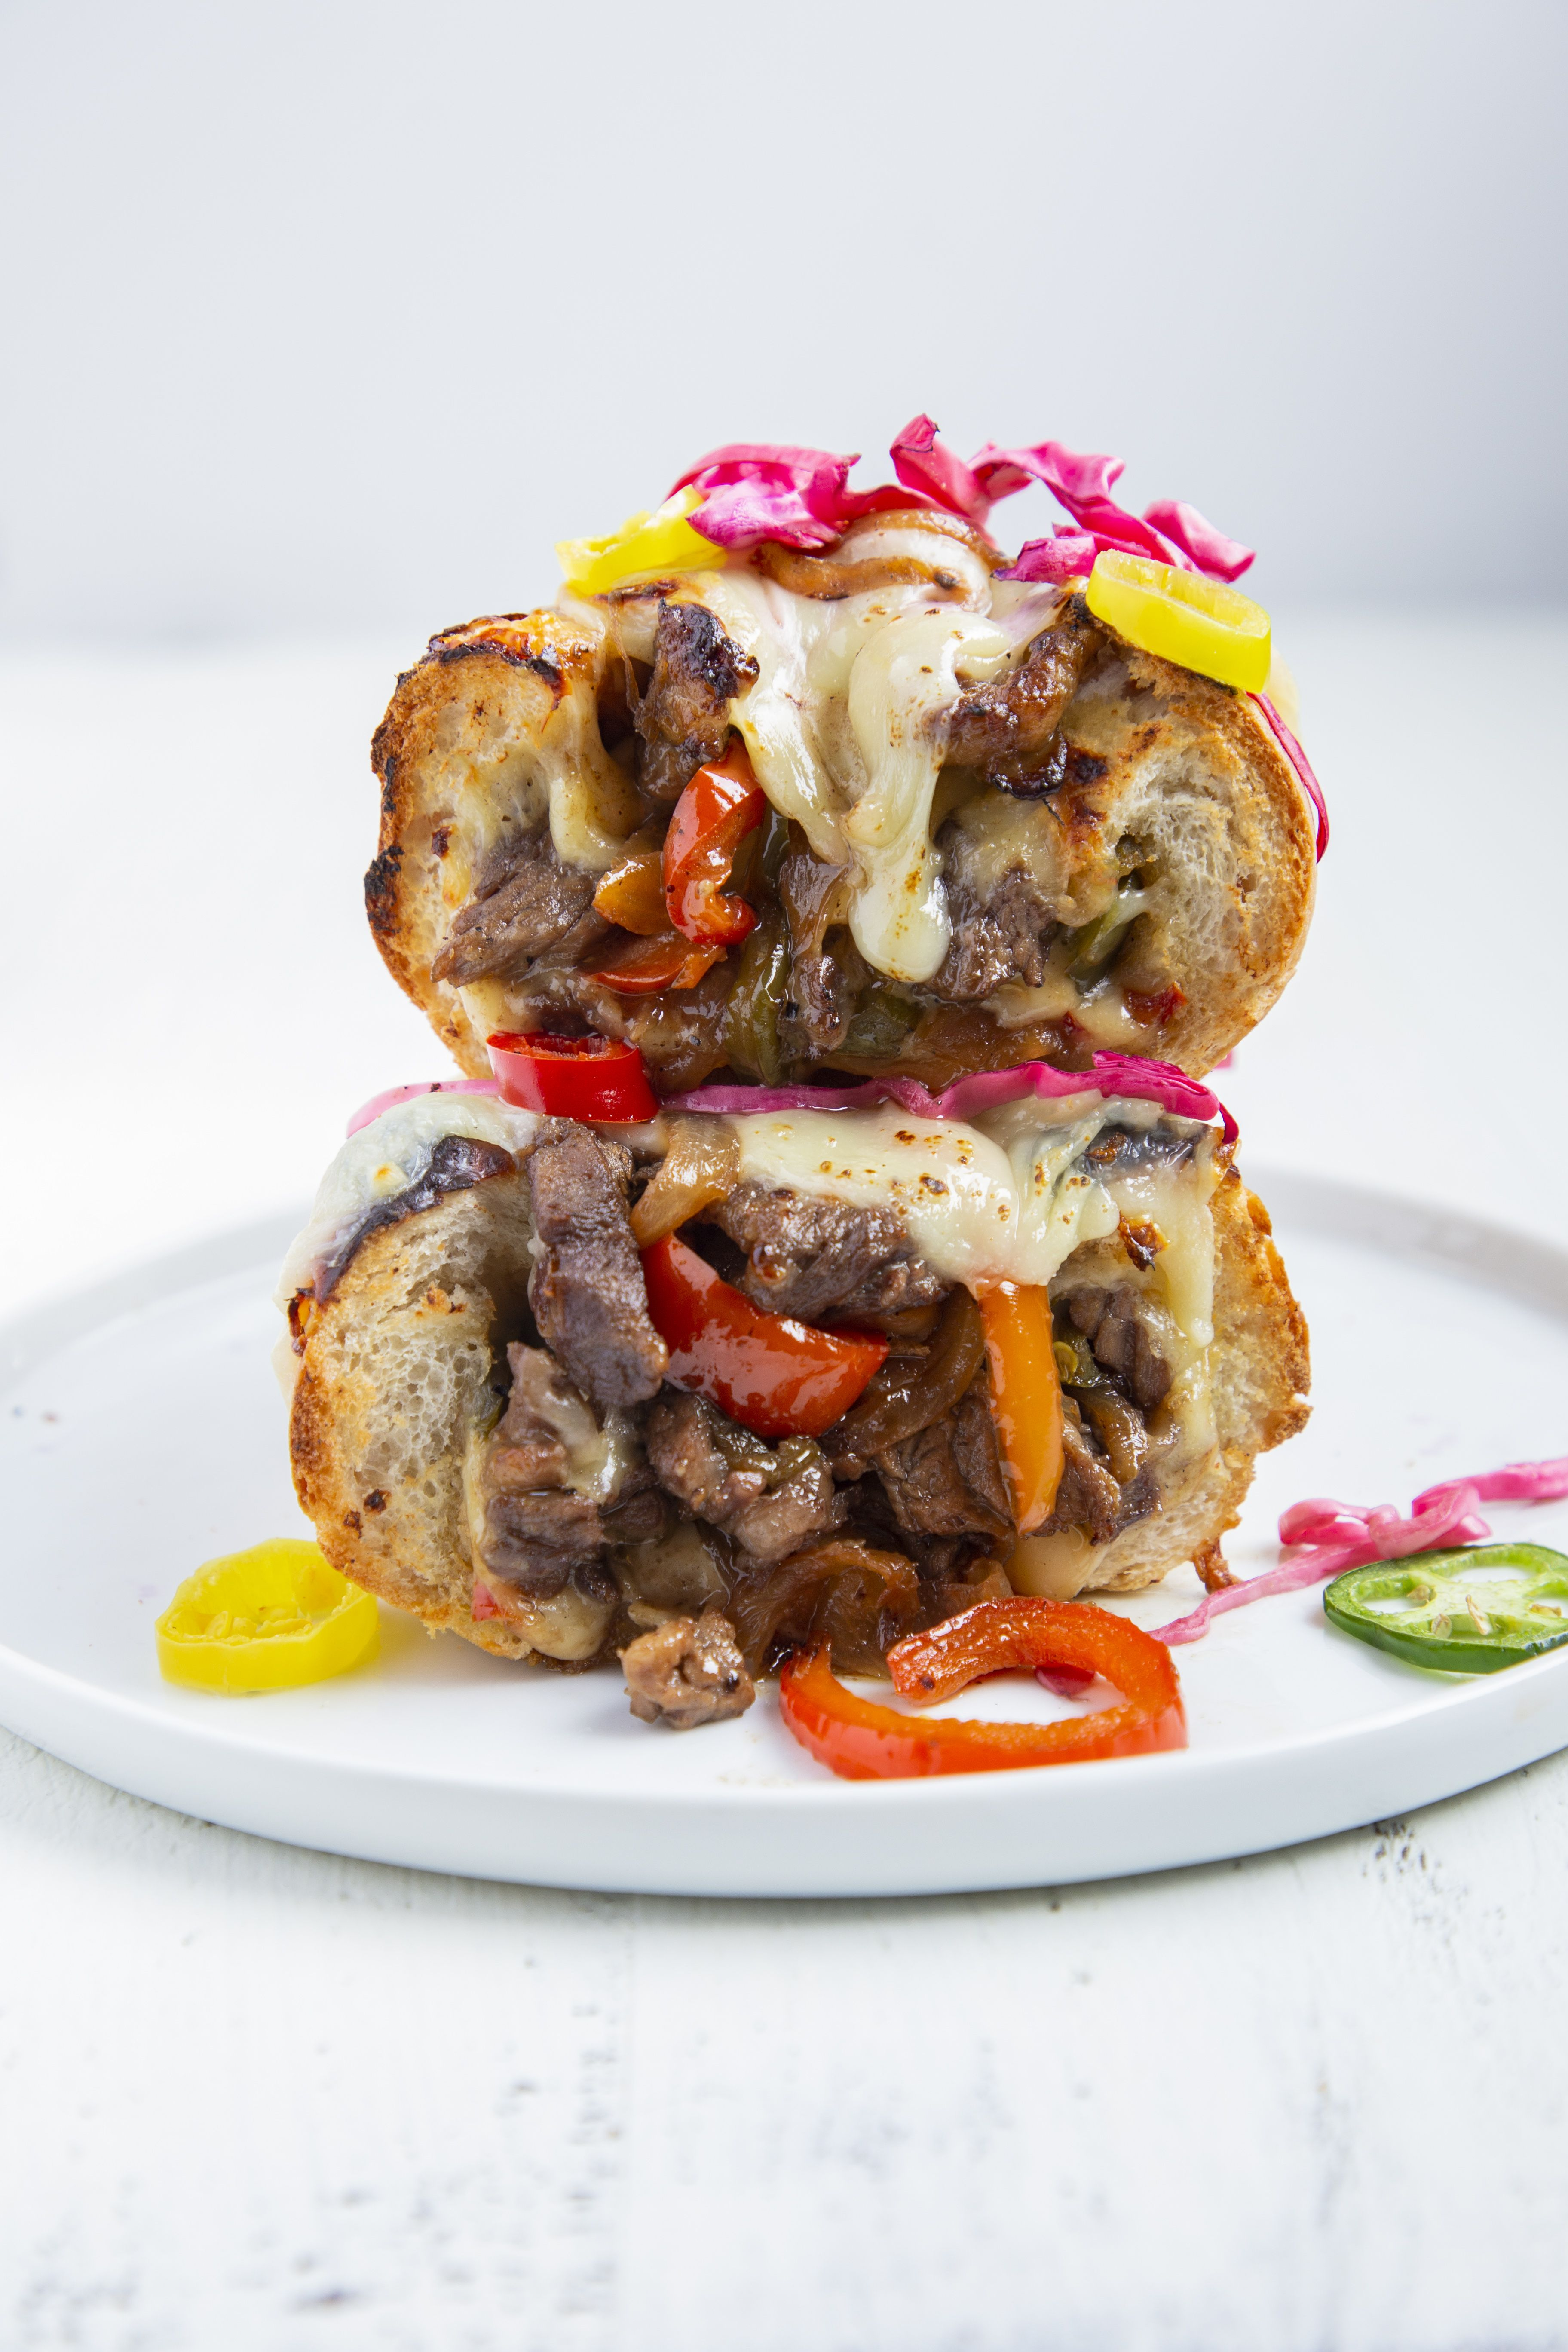 Philly Cheesesteaks with Peppers, Onions and Pickled Vegetables